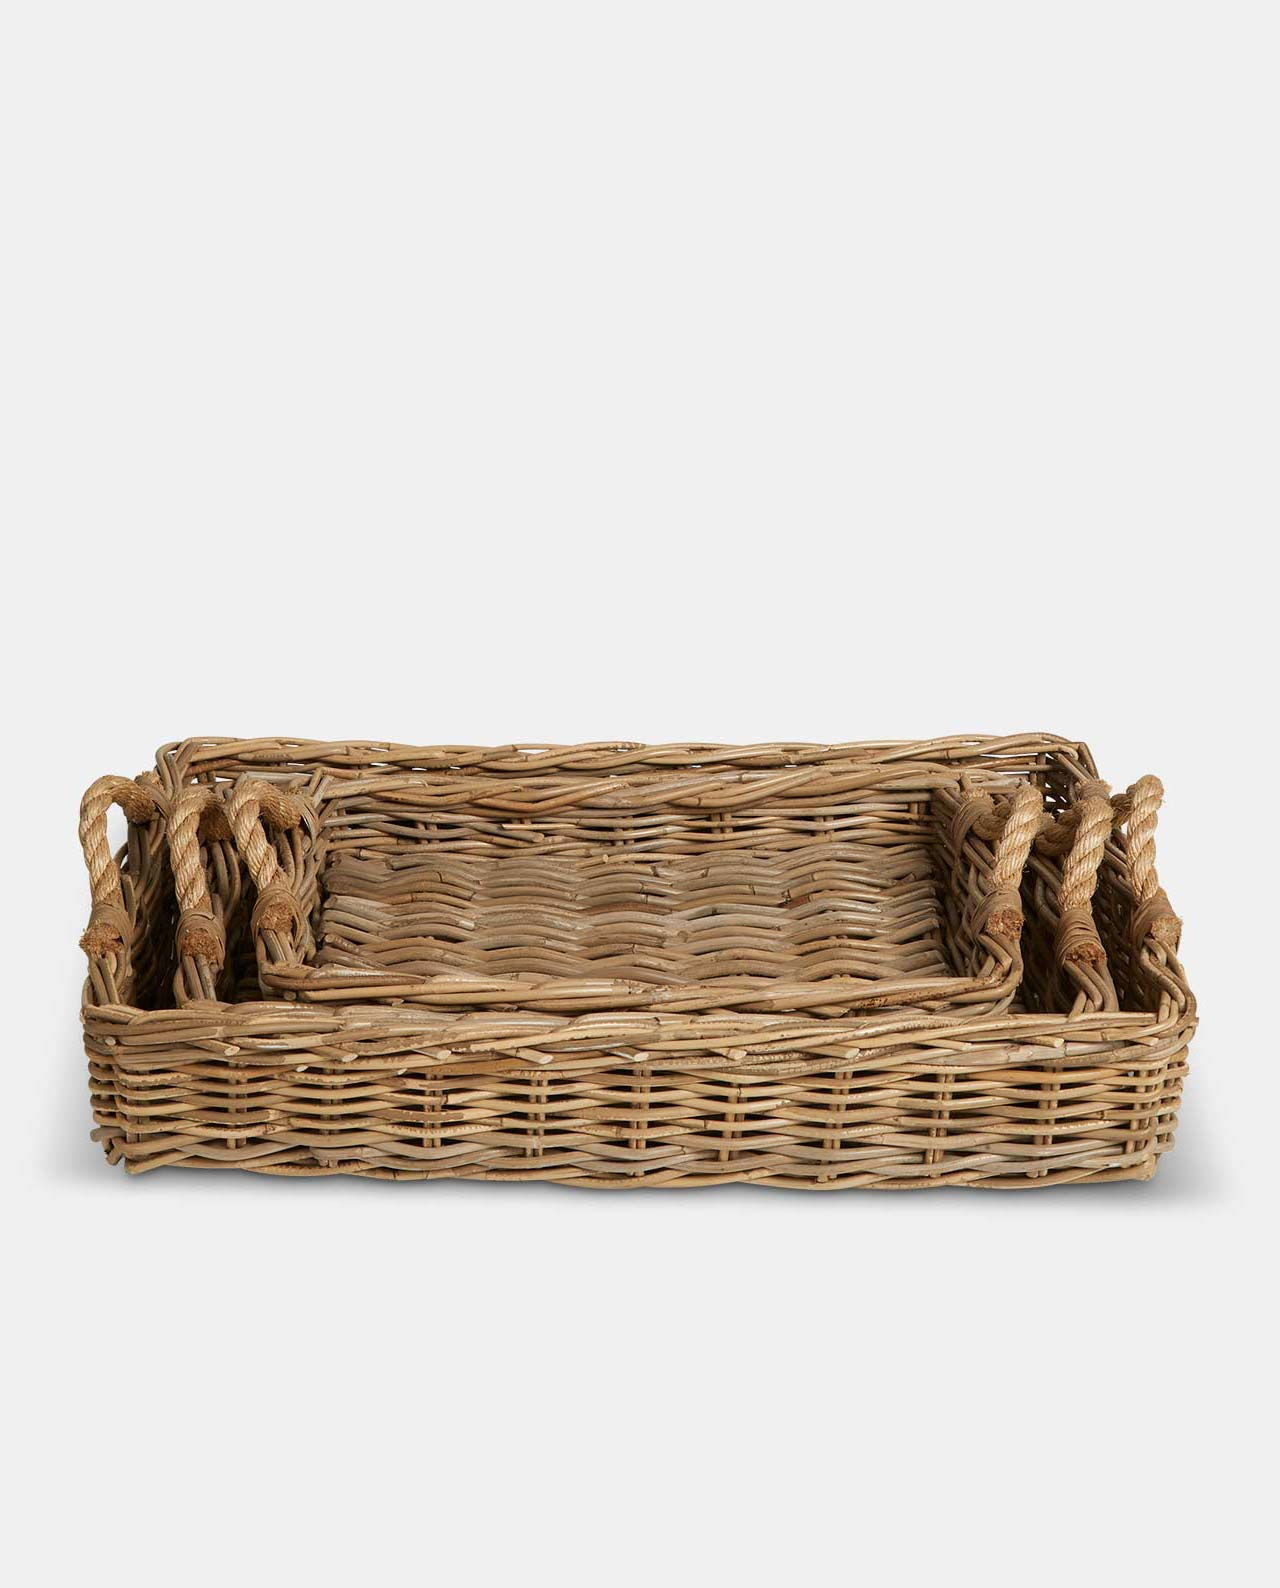 Wicker 27x27x25 Basket